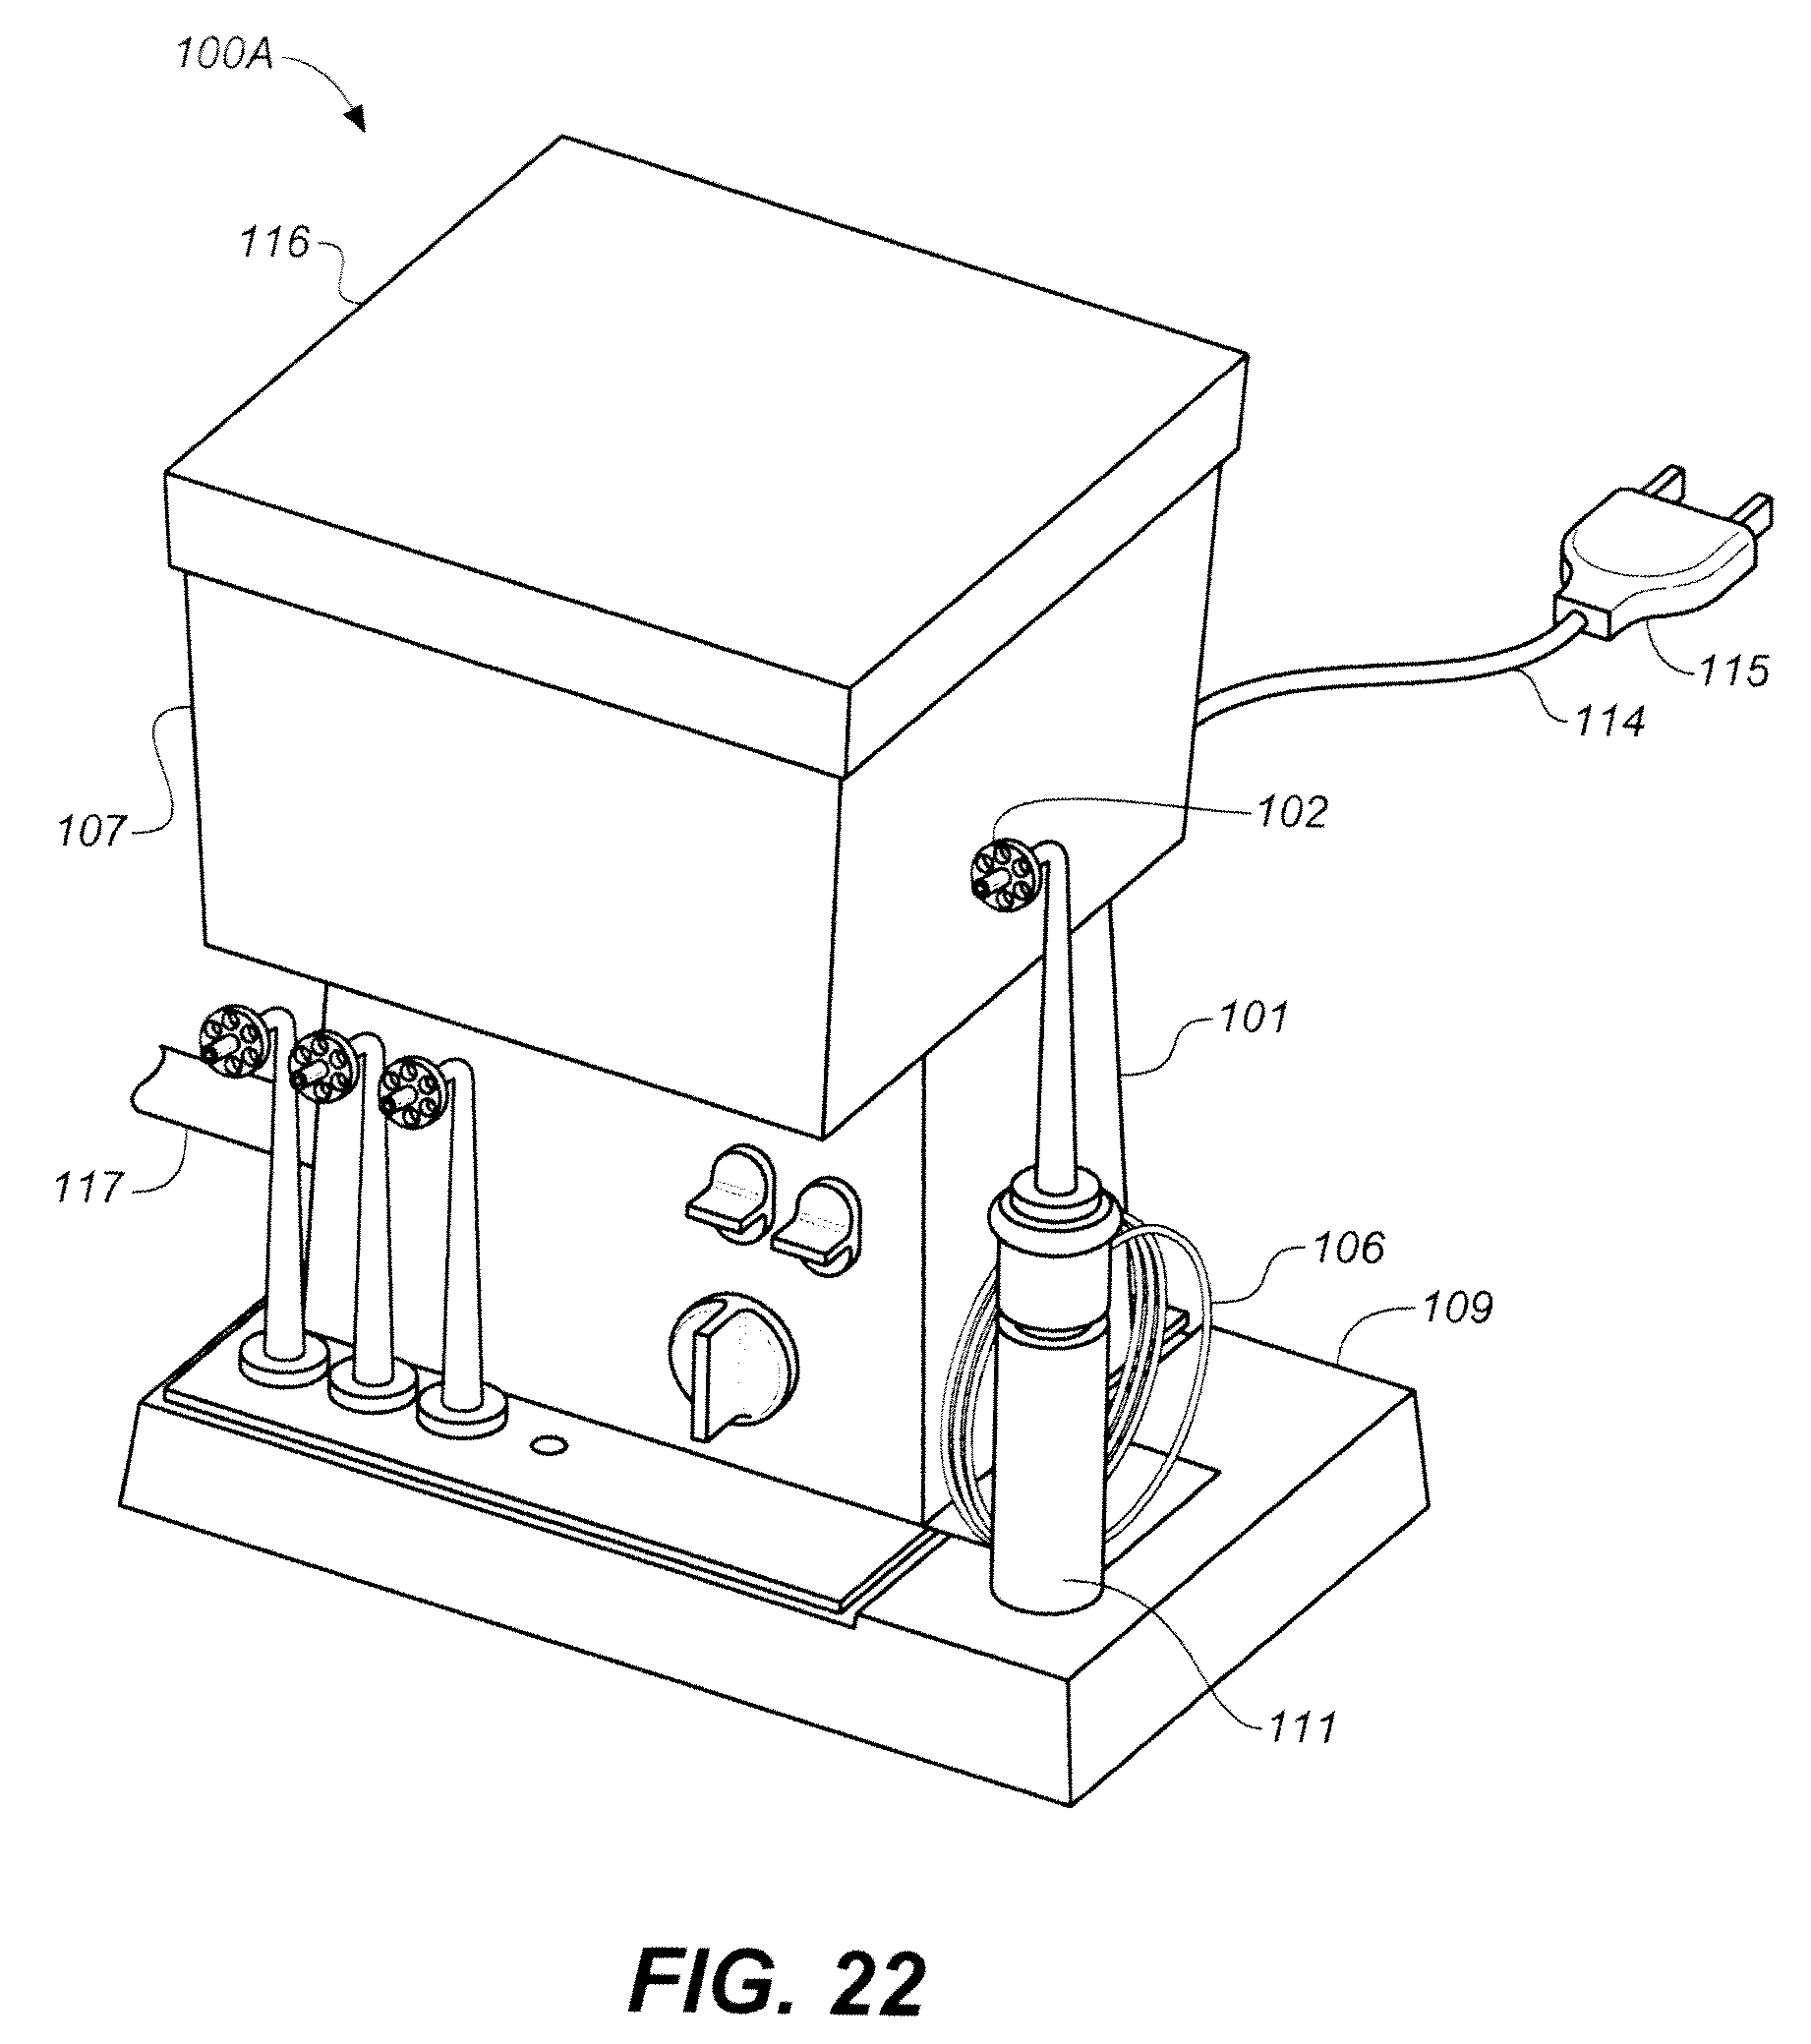 Patent US 20080255498A1 on